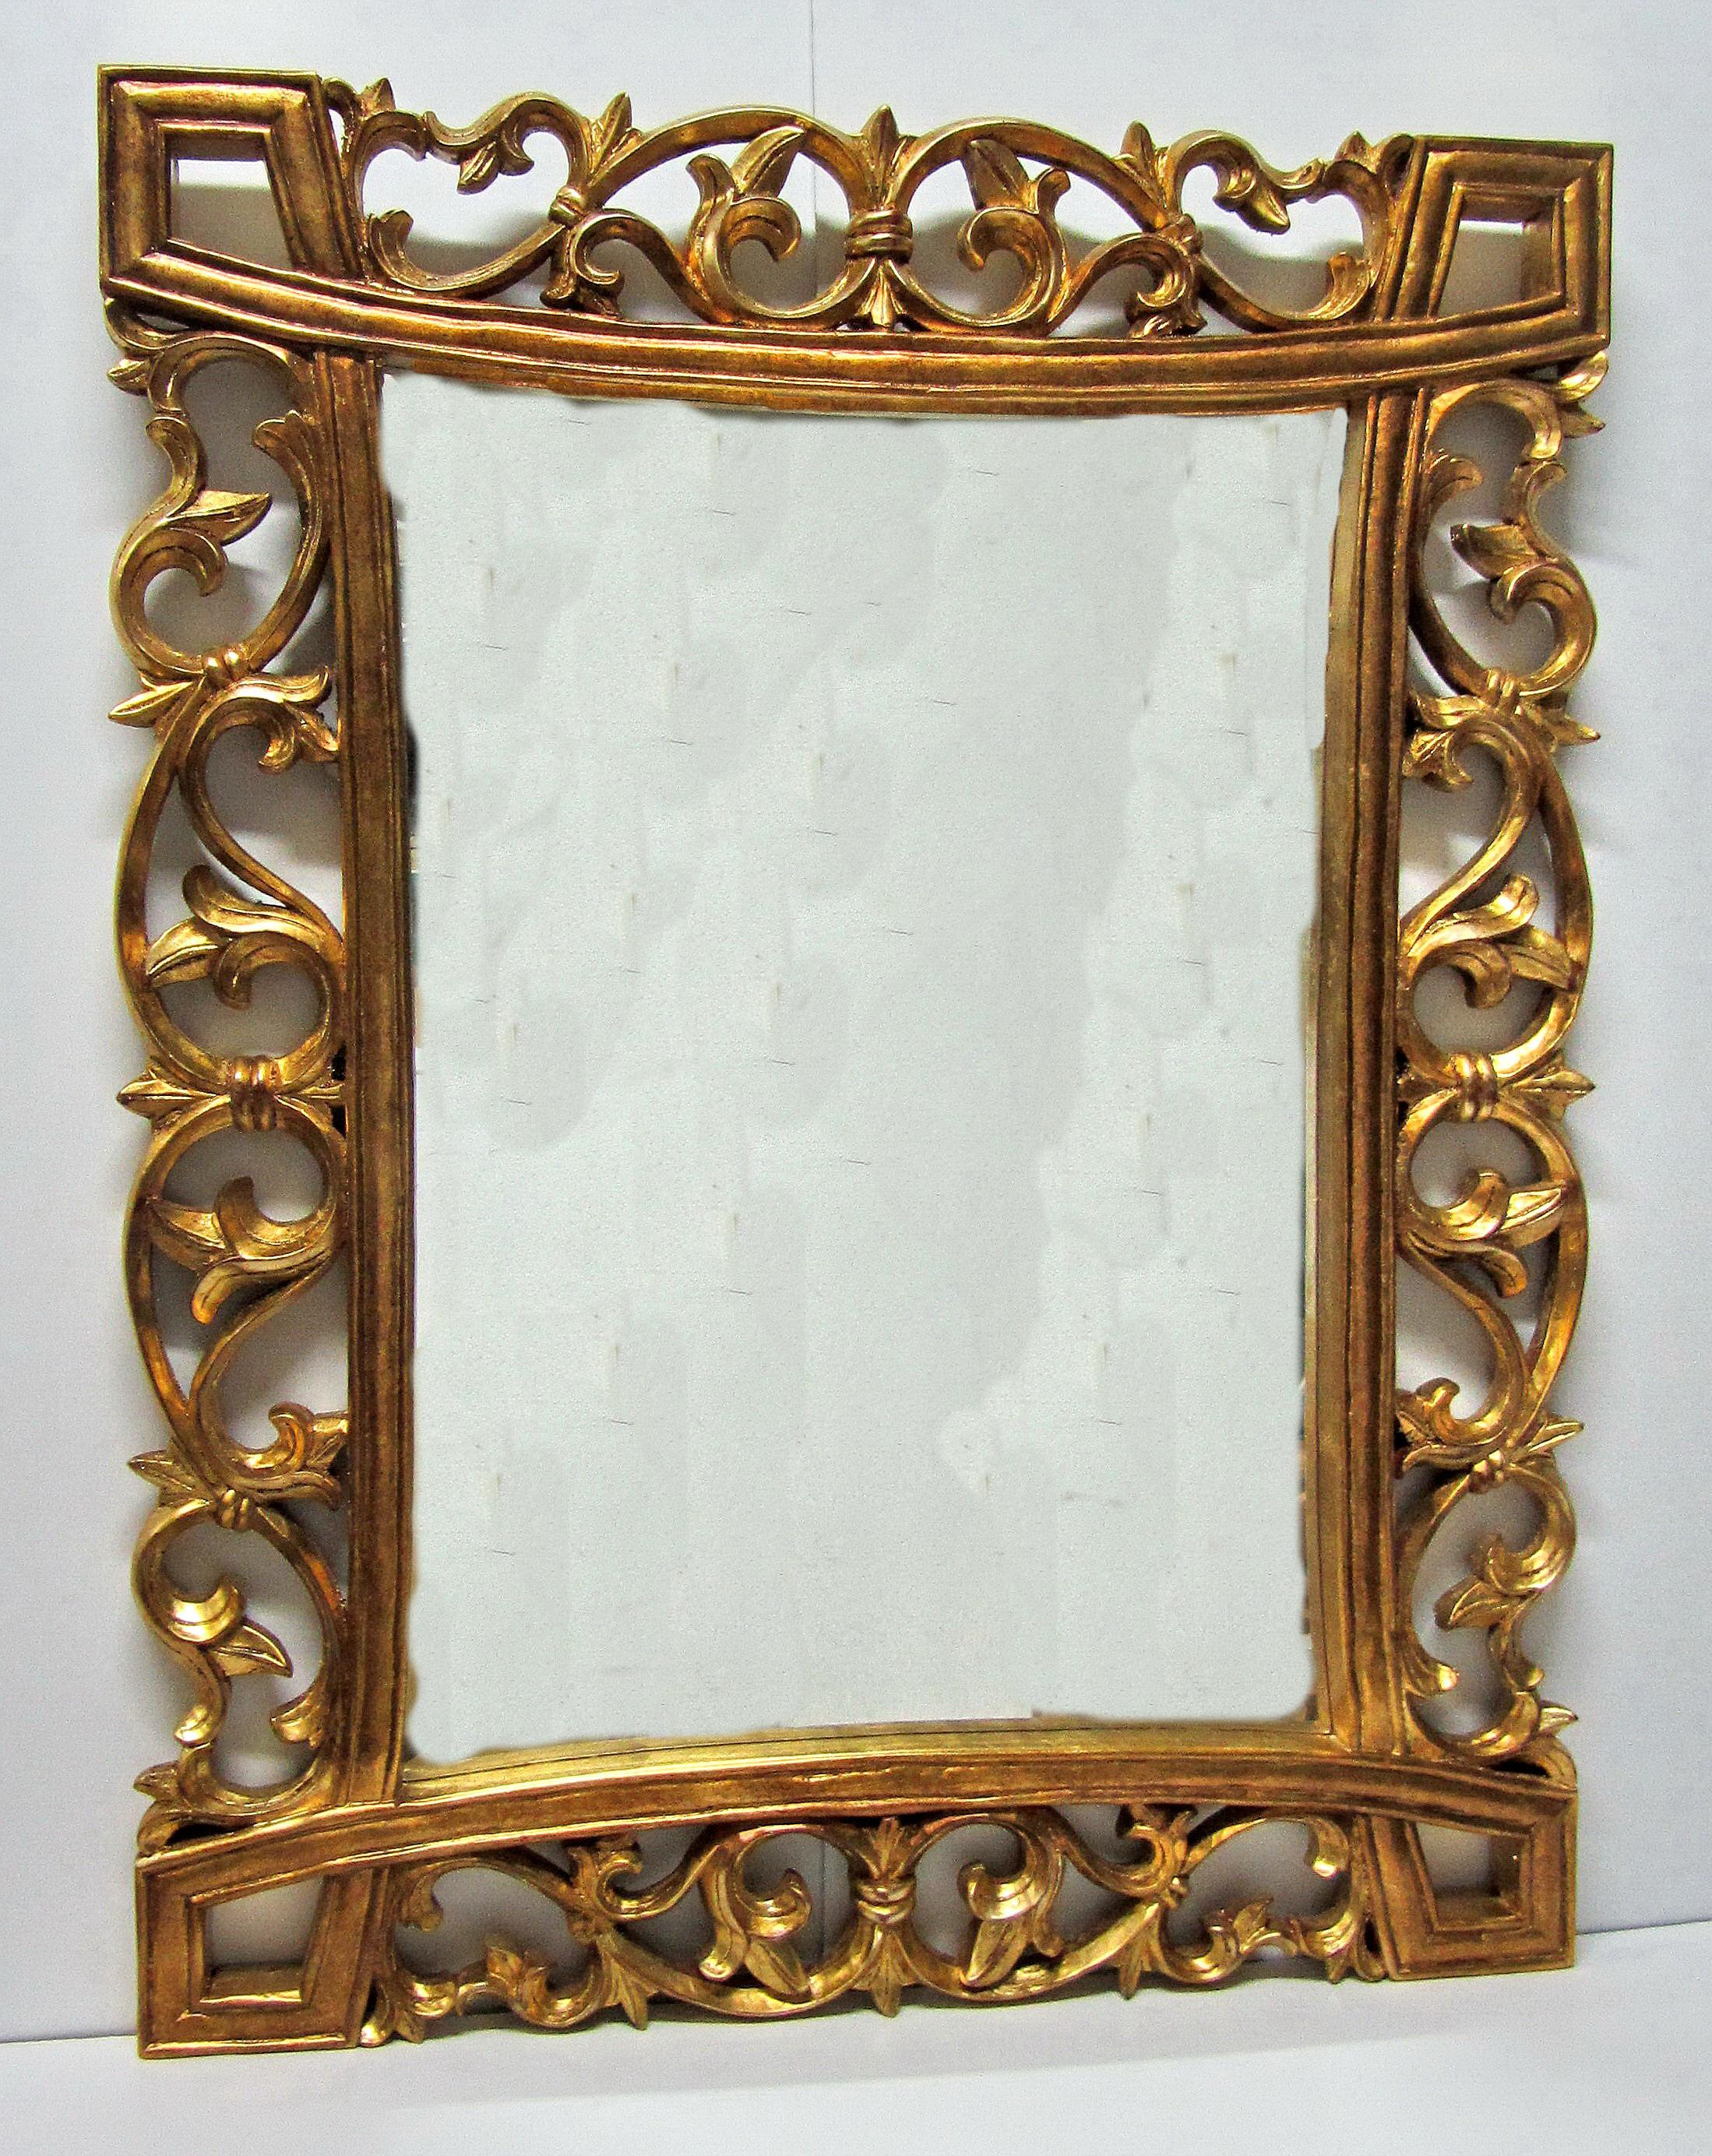 hand-carved wooden mirror frames